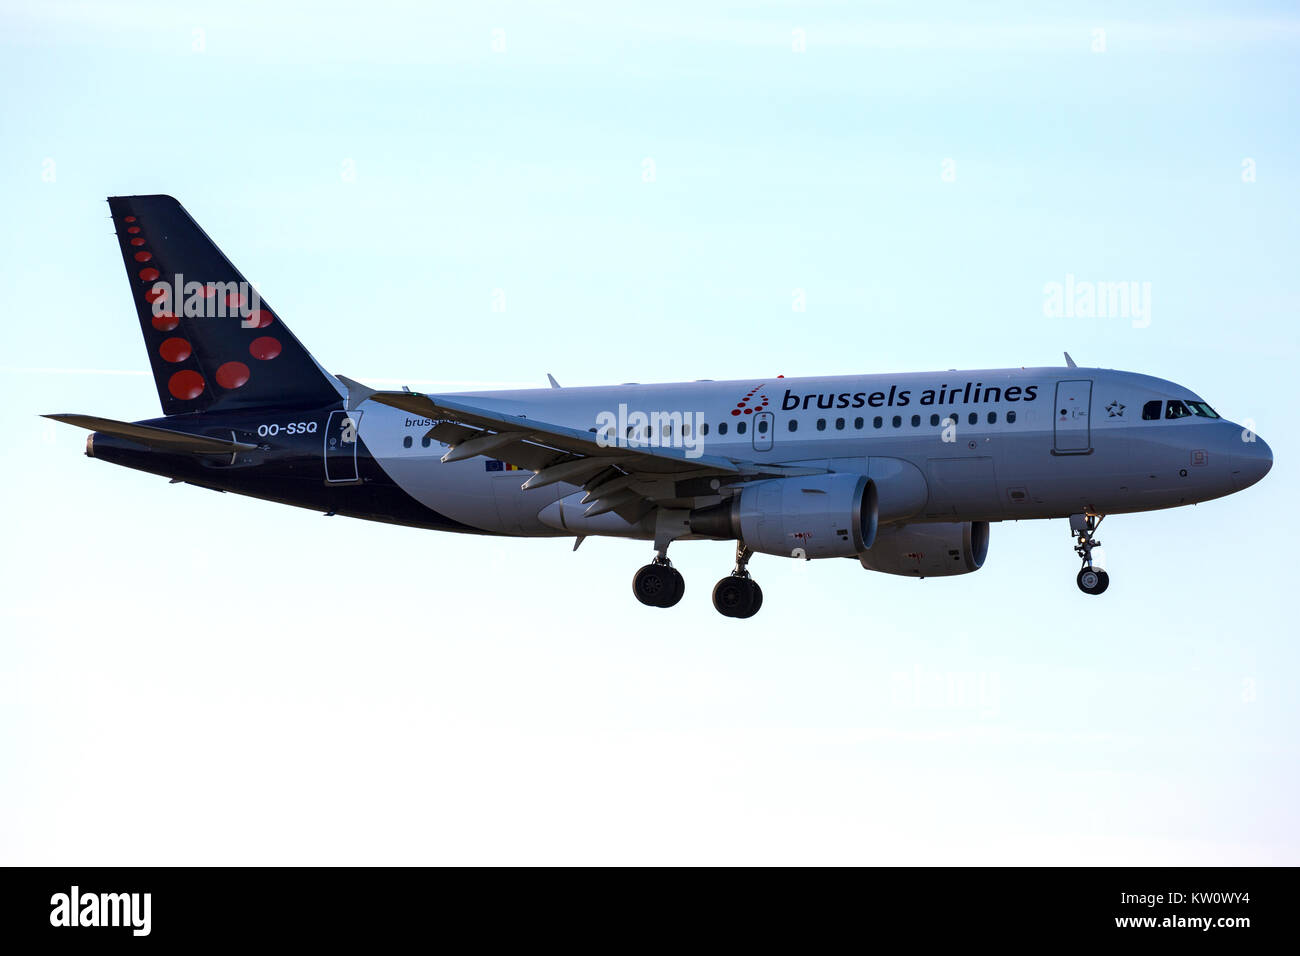 Brussels Airlines Airbus A319-112 OO-SSQ on approach to land. - Stock Image